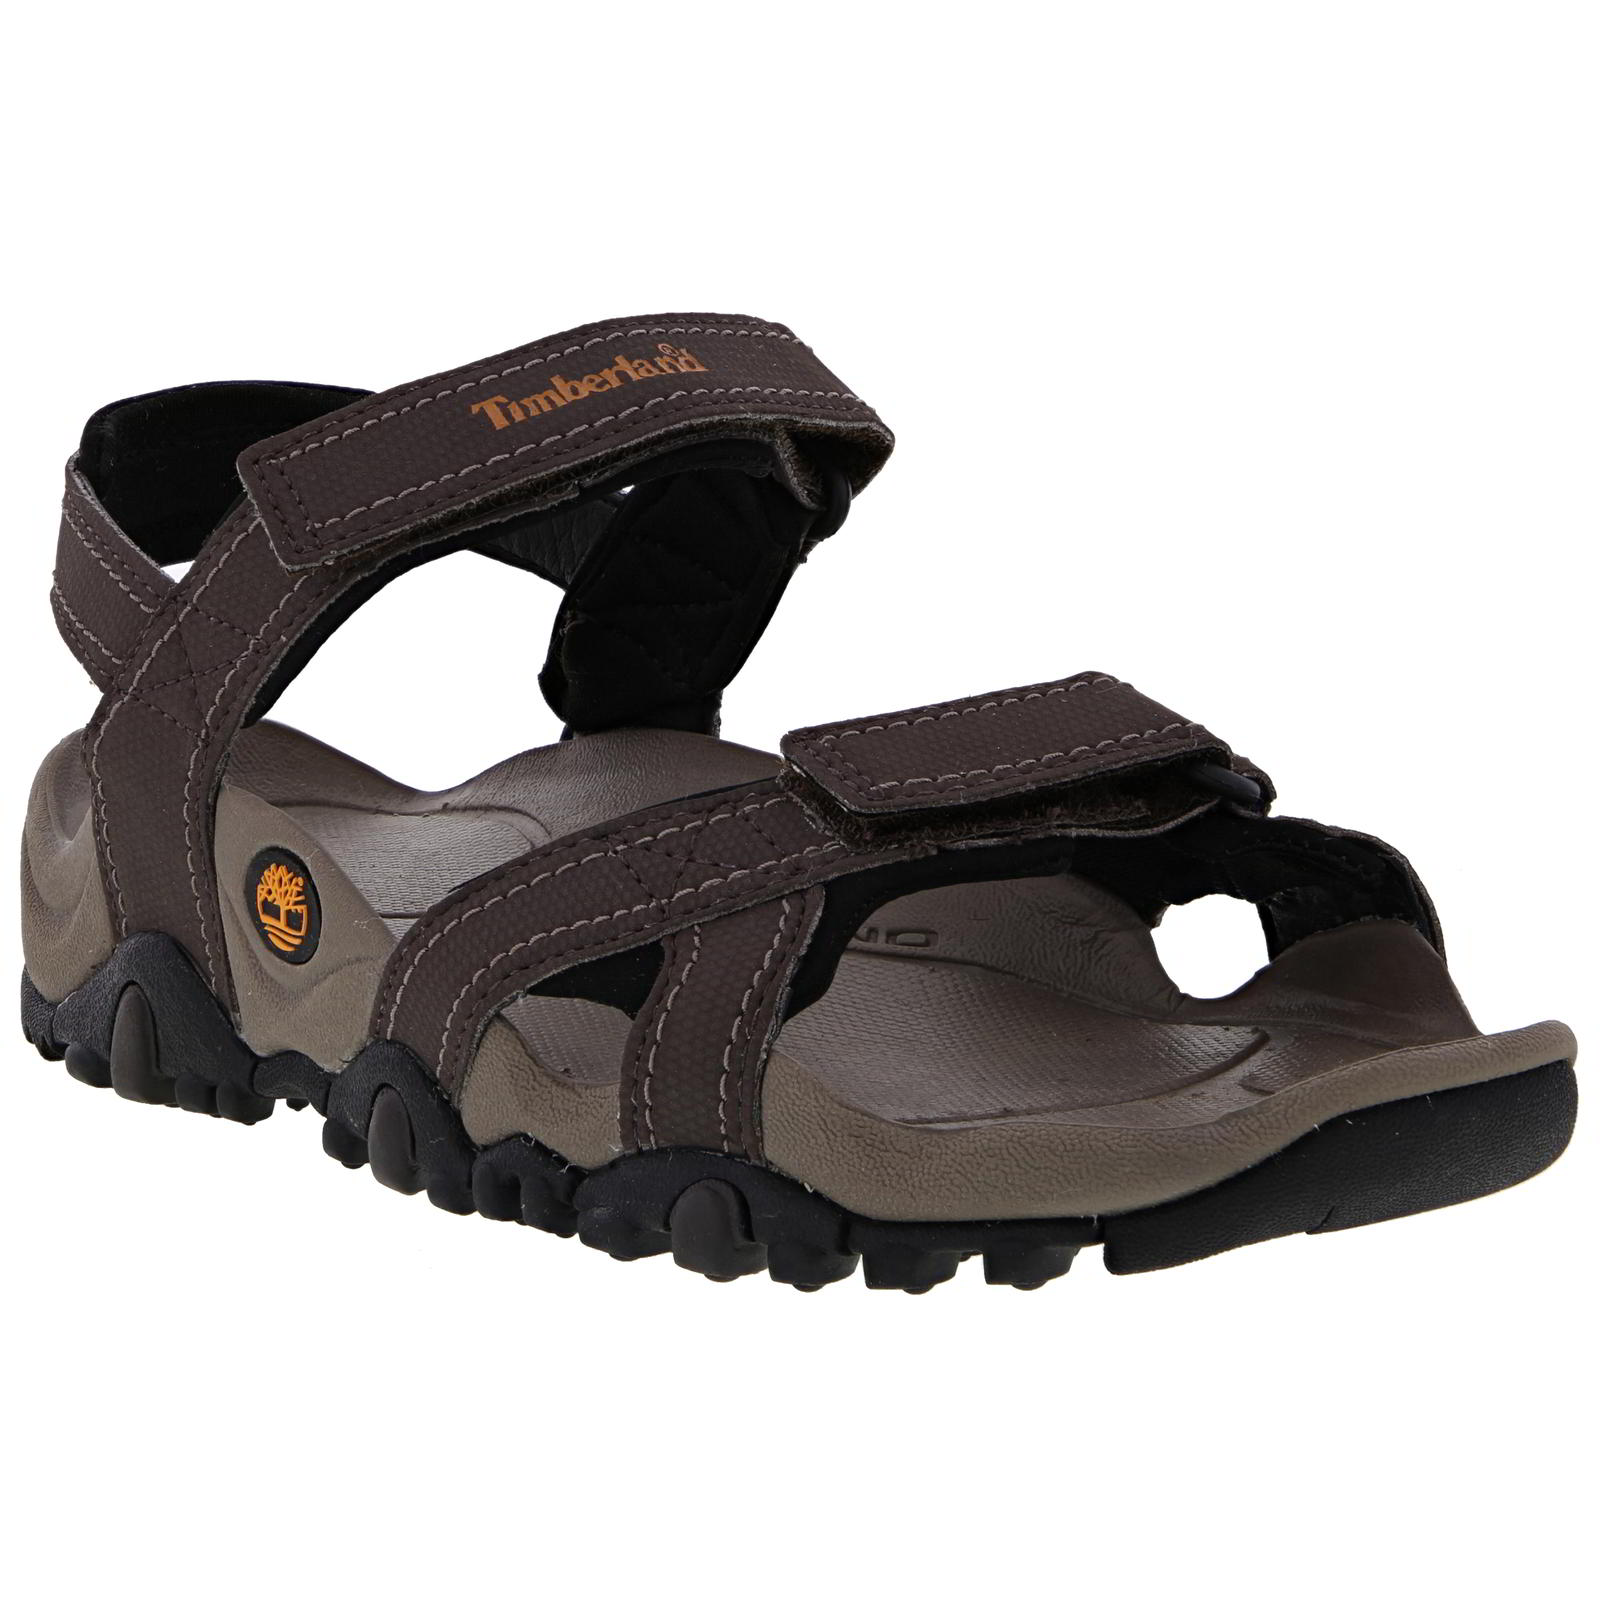 0086674d1 Details about Timberland Sandals Mens Granite Trail Series Brown Adjustable  Shoes Size 7.5-12